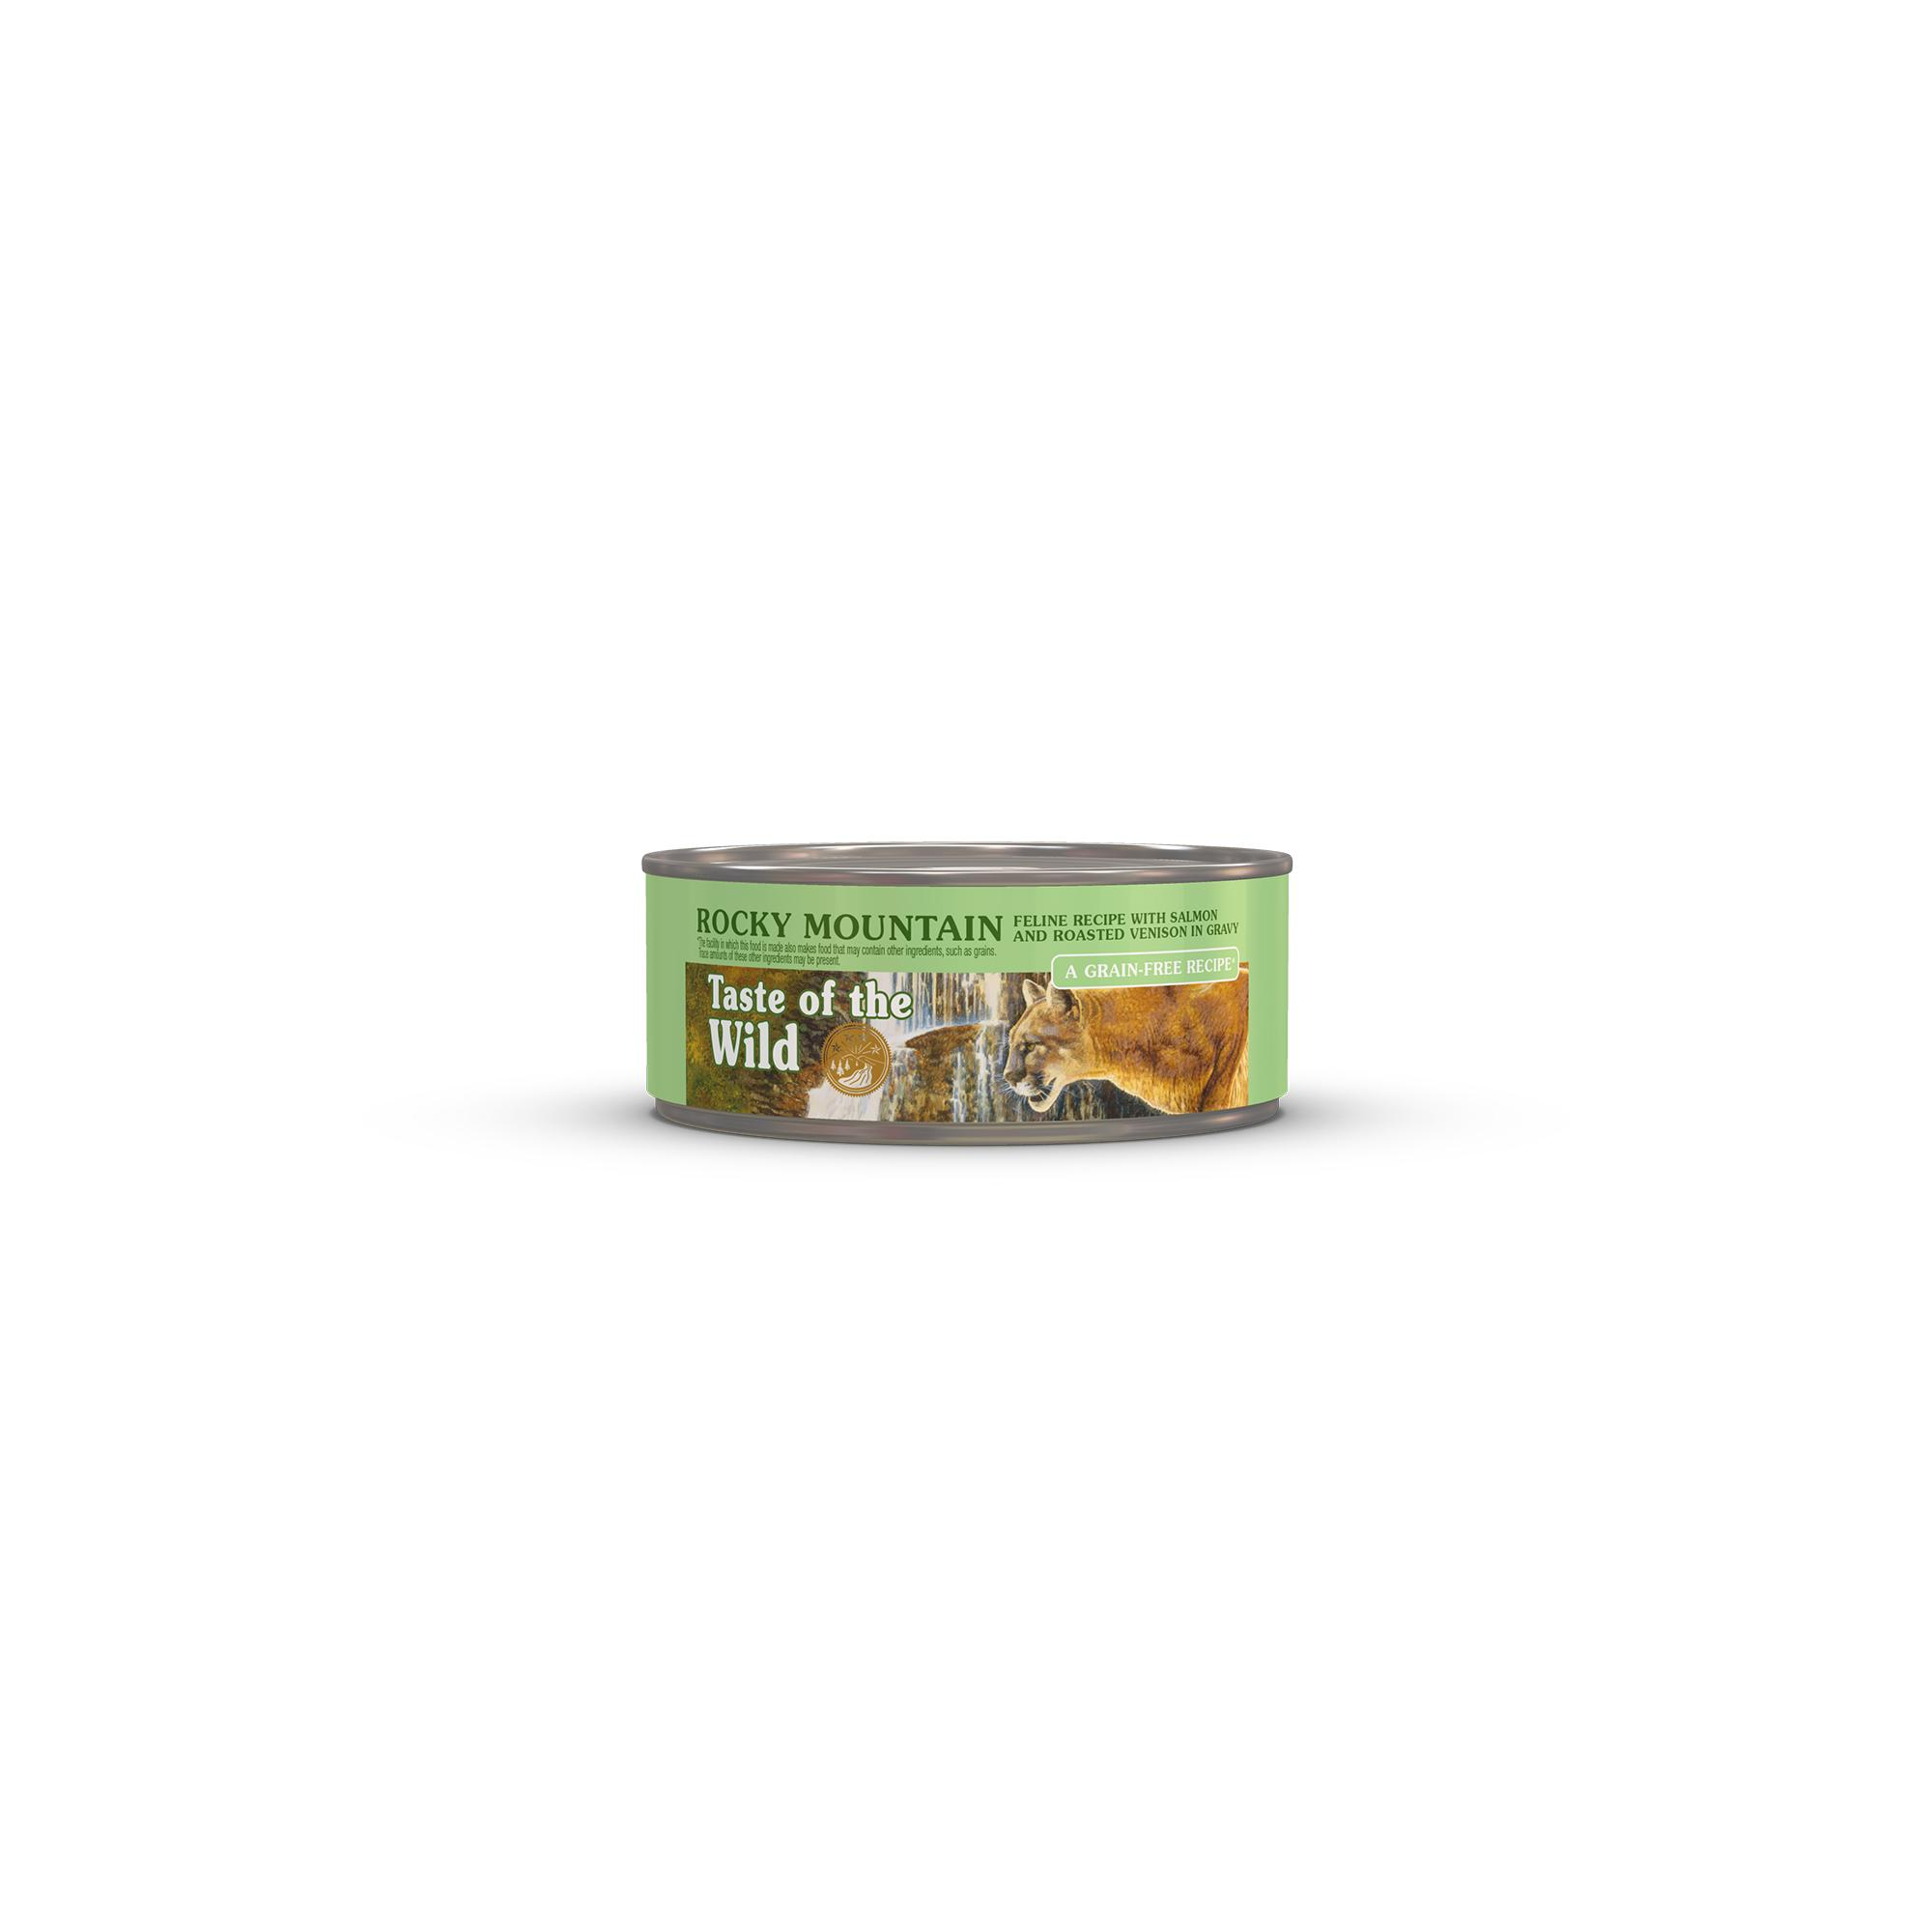 Taste of the Wild Rocky Mountain Grain-Free Canned Cat Food, 5.5-oz